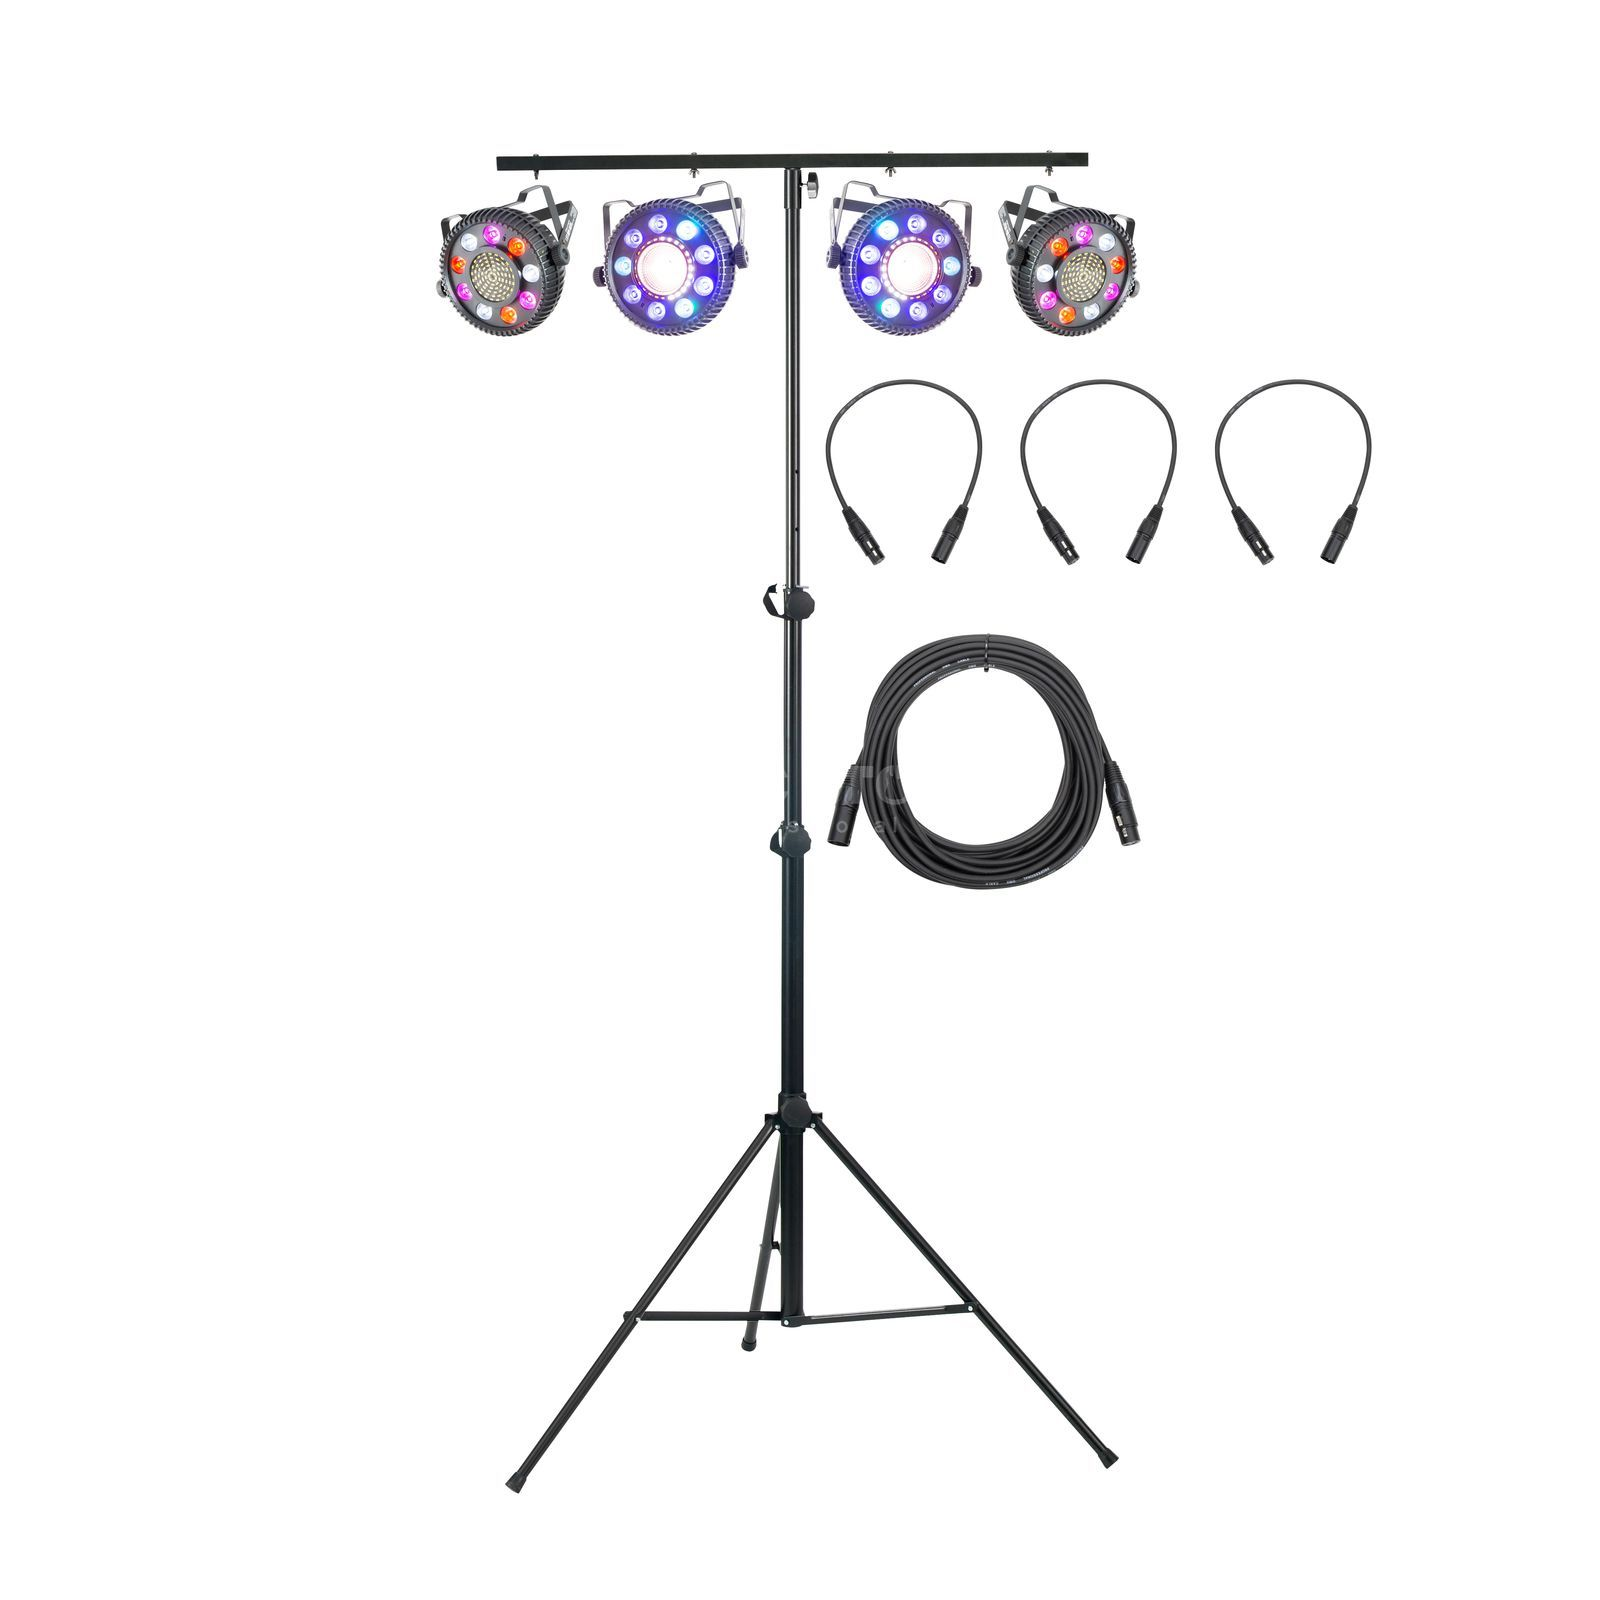 LightmaXX LED Mega PAR 64 Tour - Set Produktbild